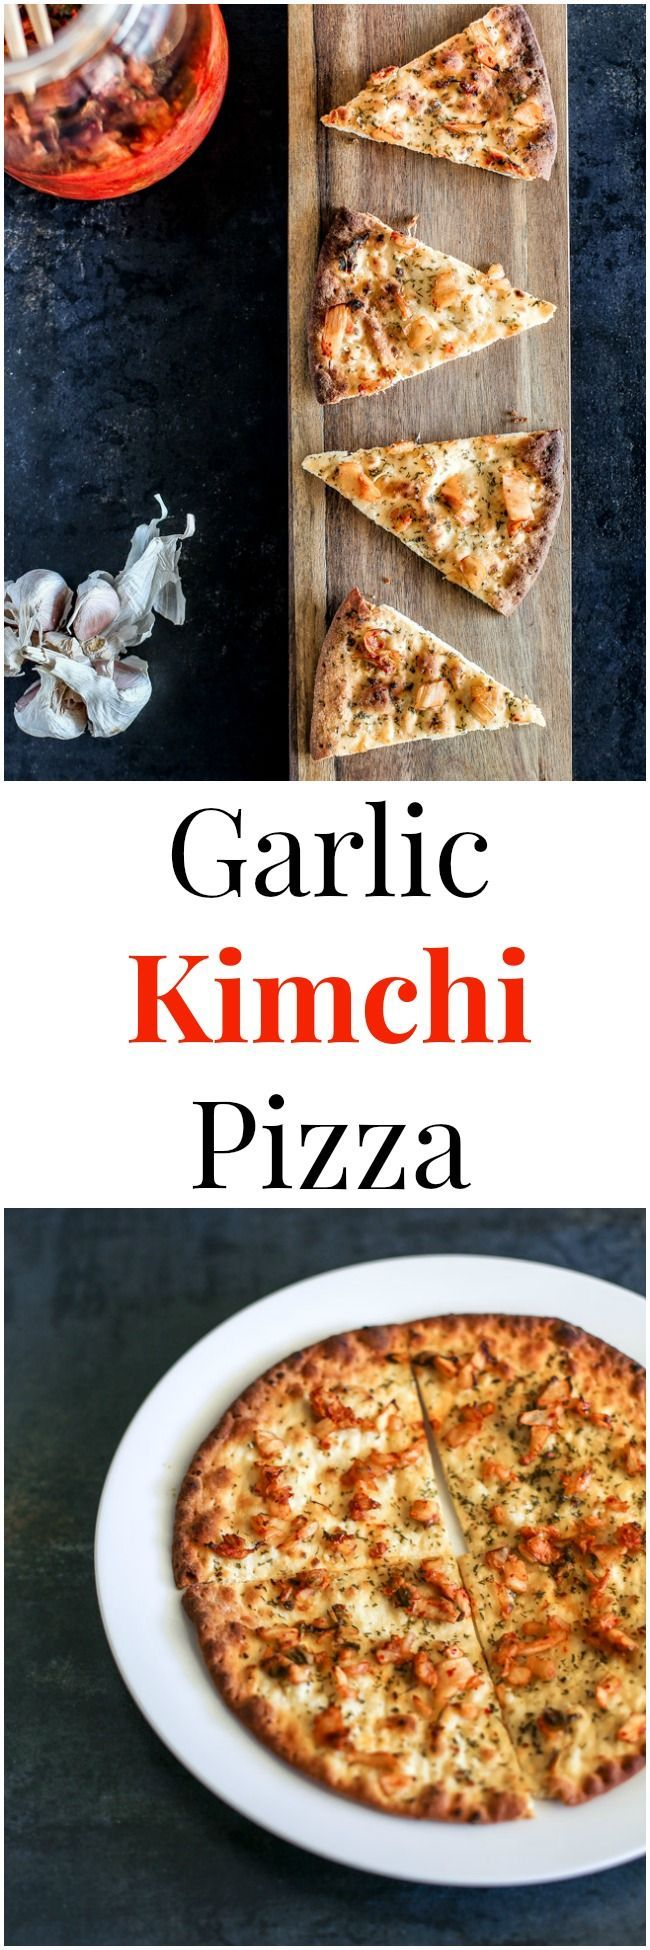 Stone Baked Garlic Kimchi Pizza recipe - It's crispy and savoury with a tint of Kimchi flavour. A perfect Korean fusion entry dish that will please your dinning guest.   MyKoreanKitchen.com